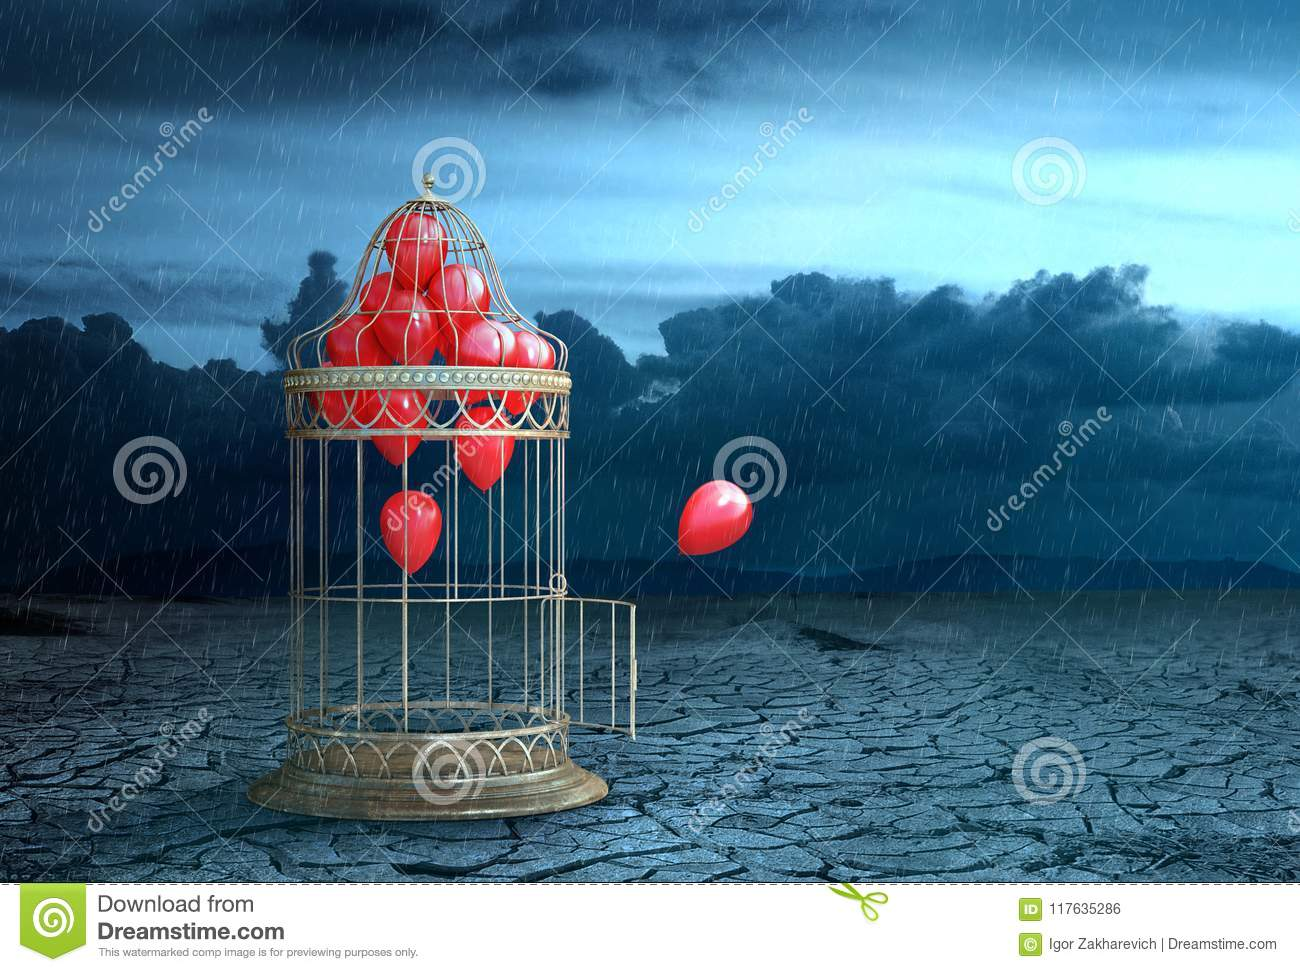 Download Concept Of Freedom. Air Ball Fly Out Of The Cage Stock Photo - Image of life, abstract: 117635286